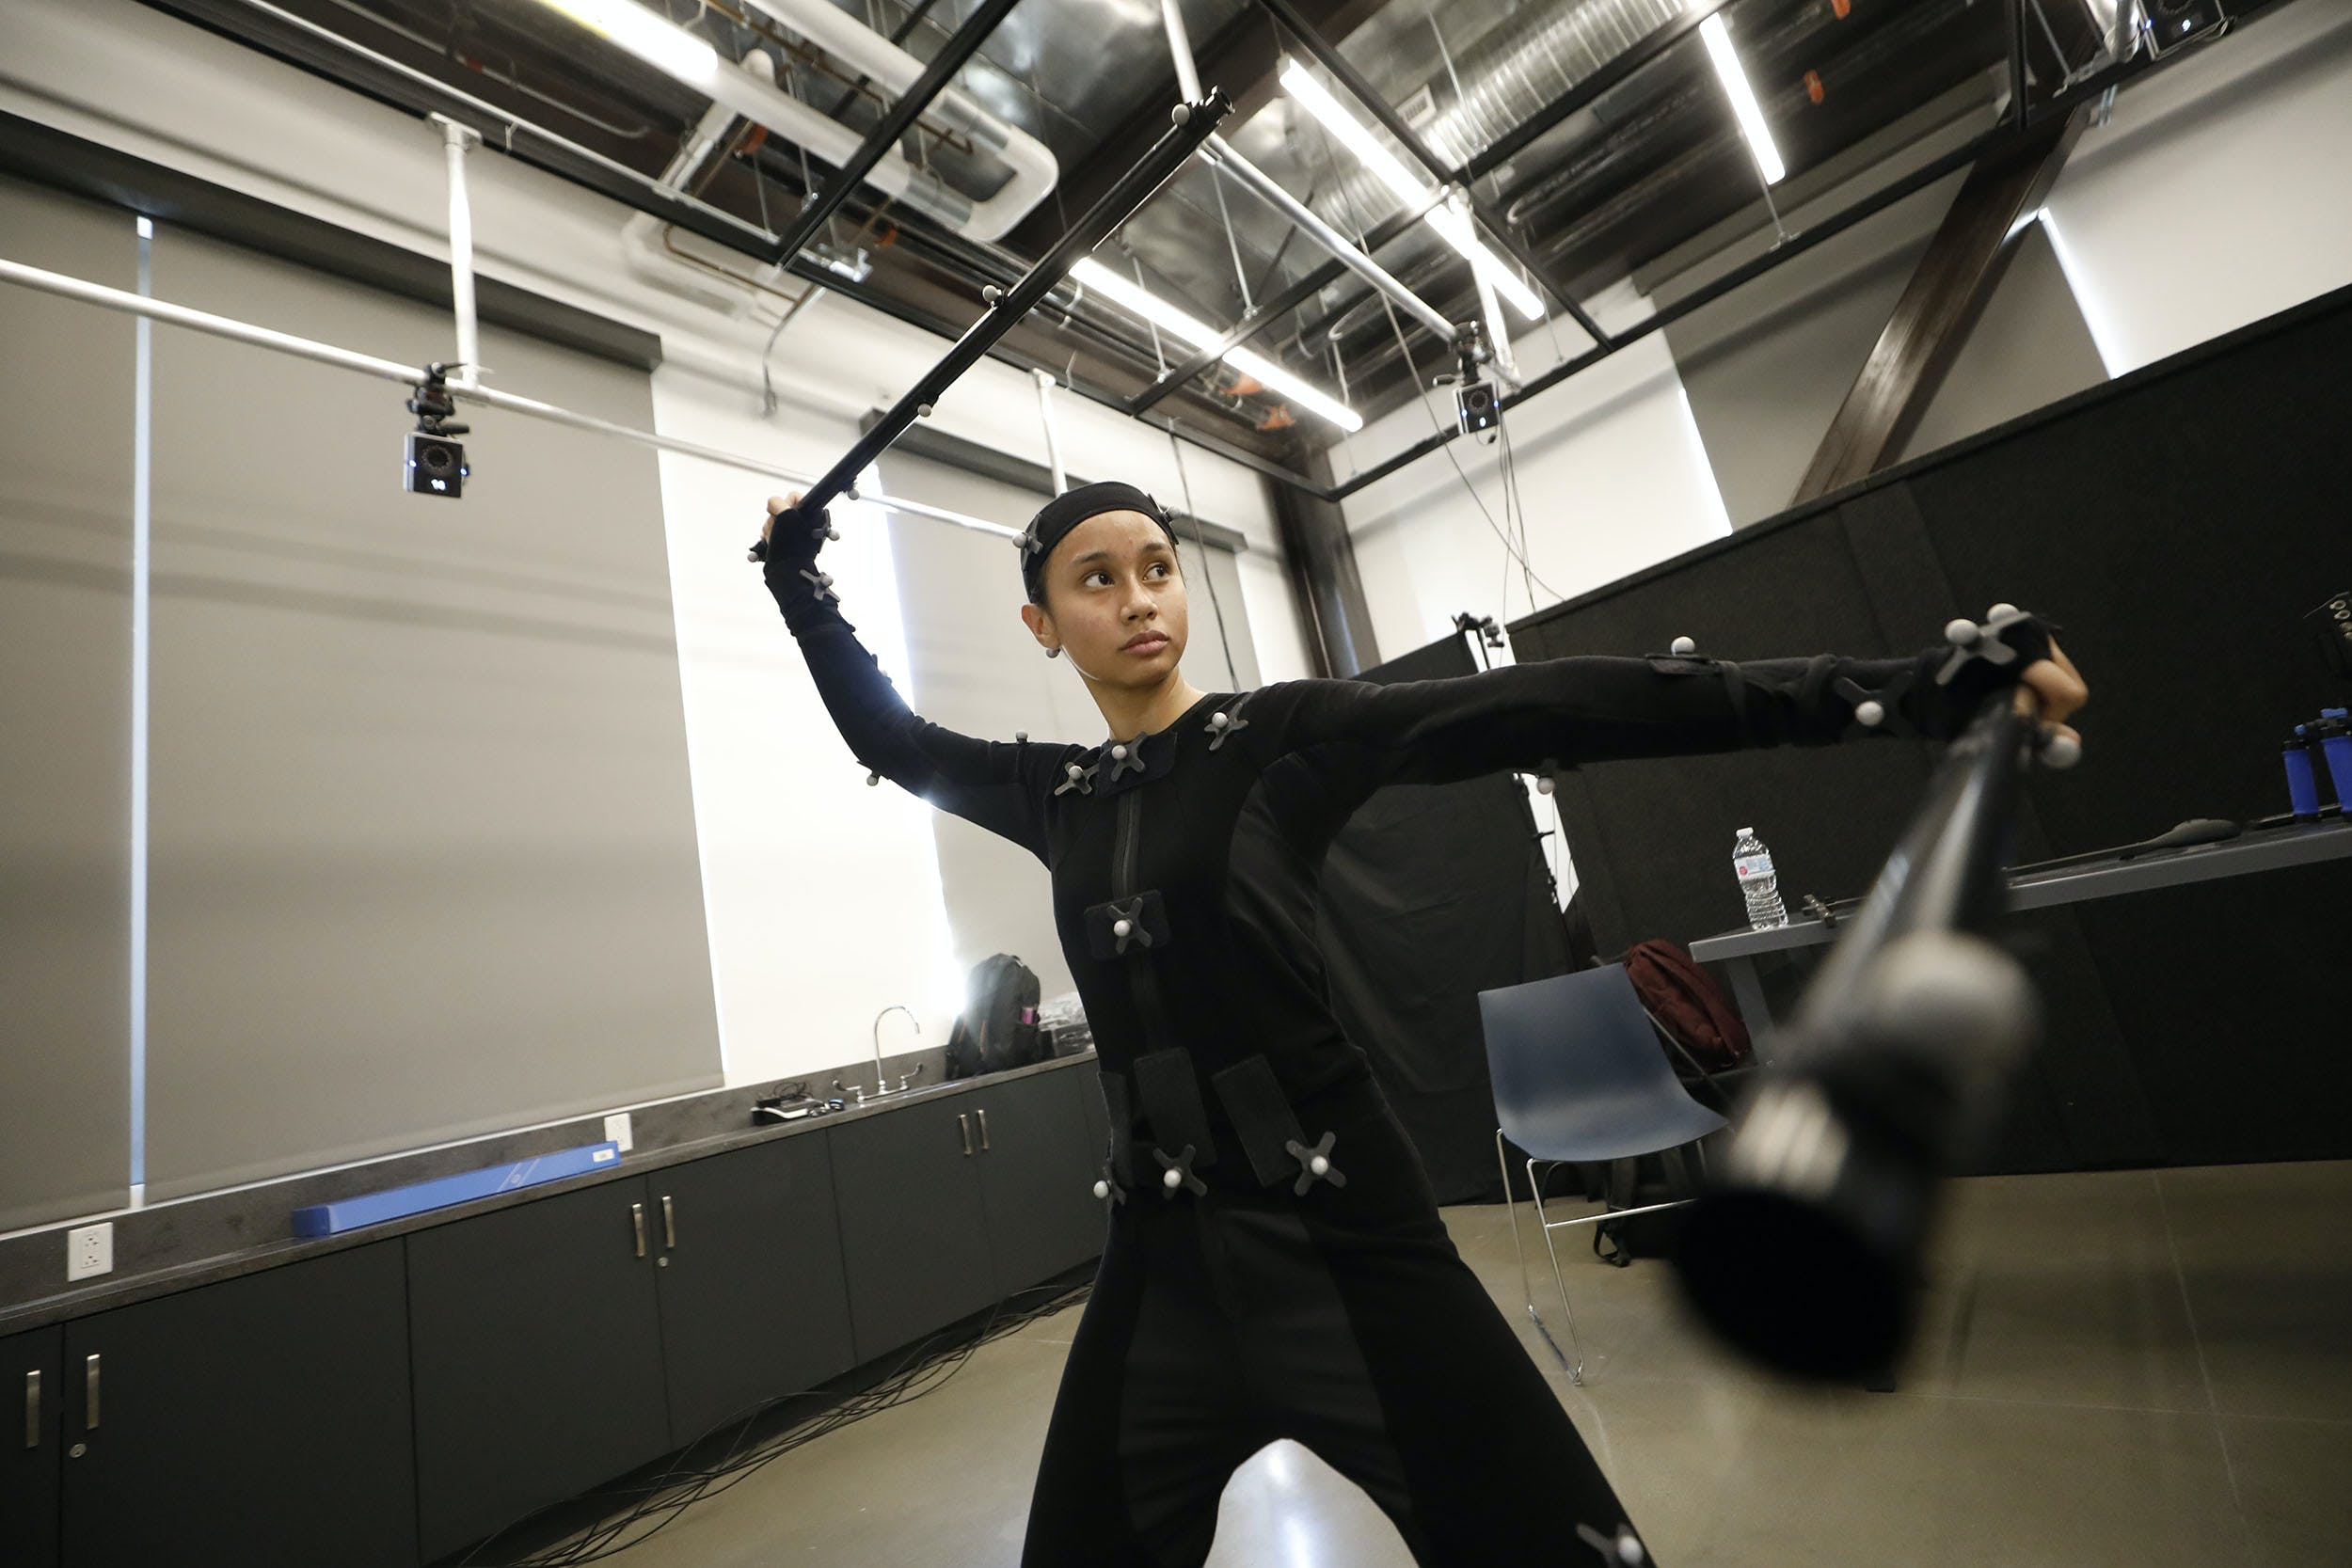 Female wearing black body suit holding to long rods for motion capture